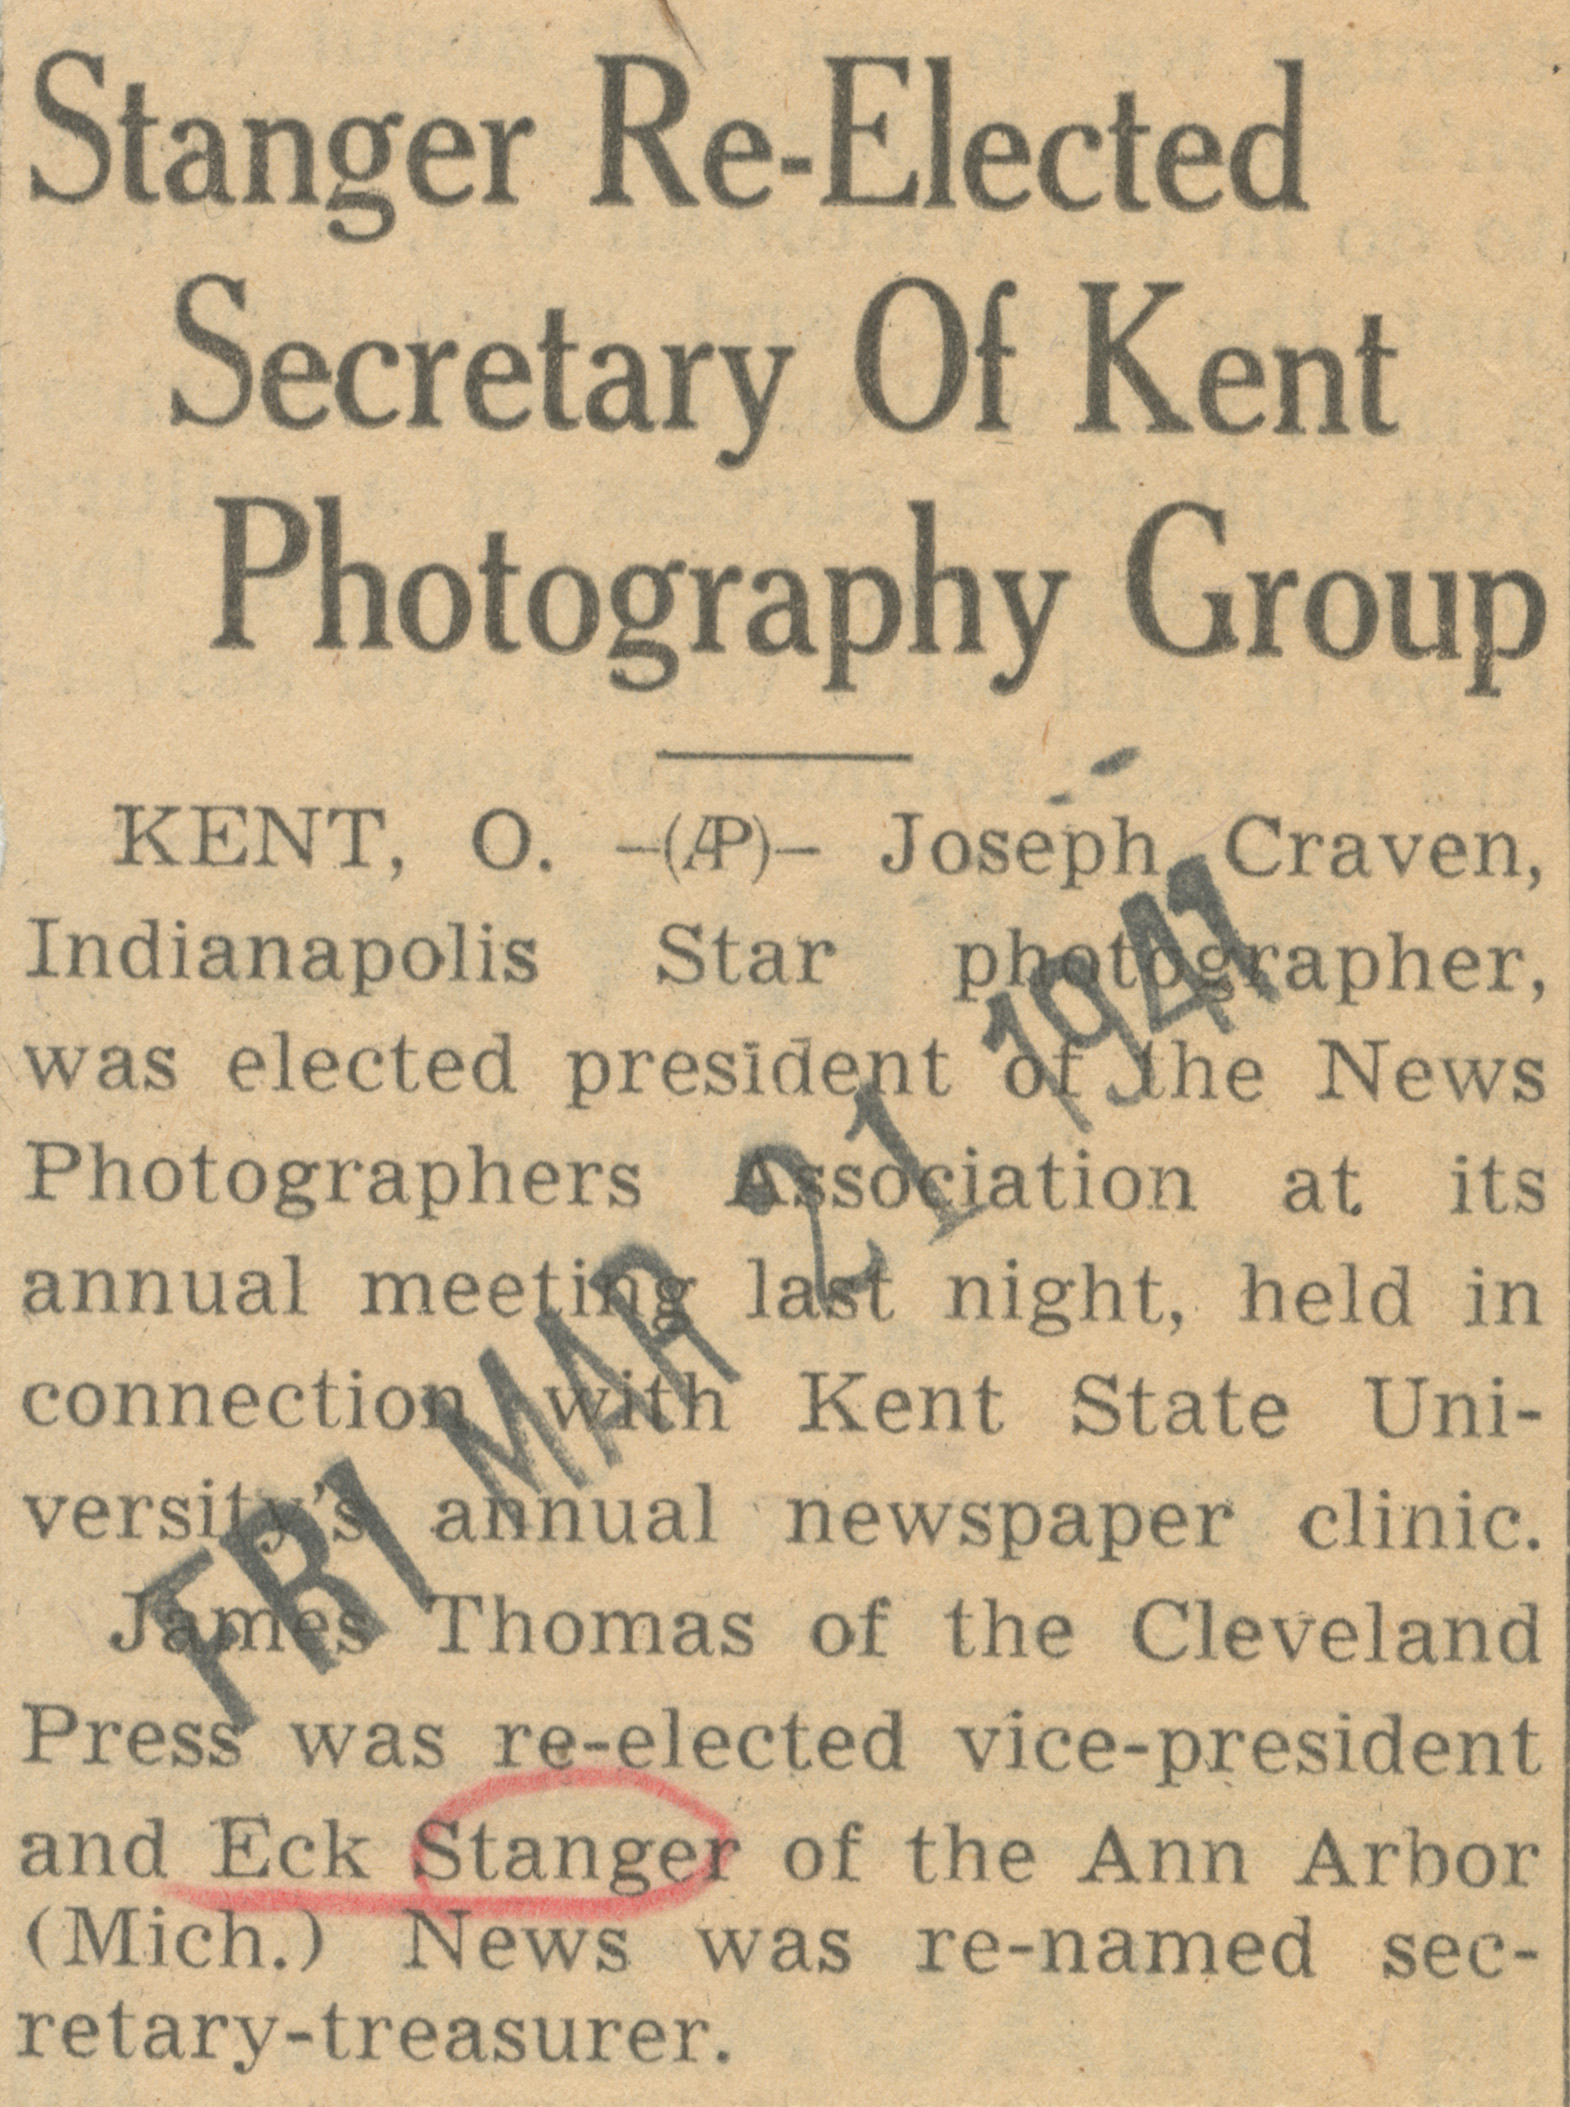 Stanger Re-Elected Secretary Of Kent Photography Group image